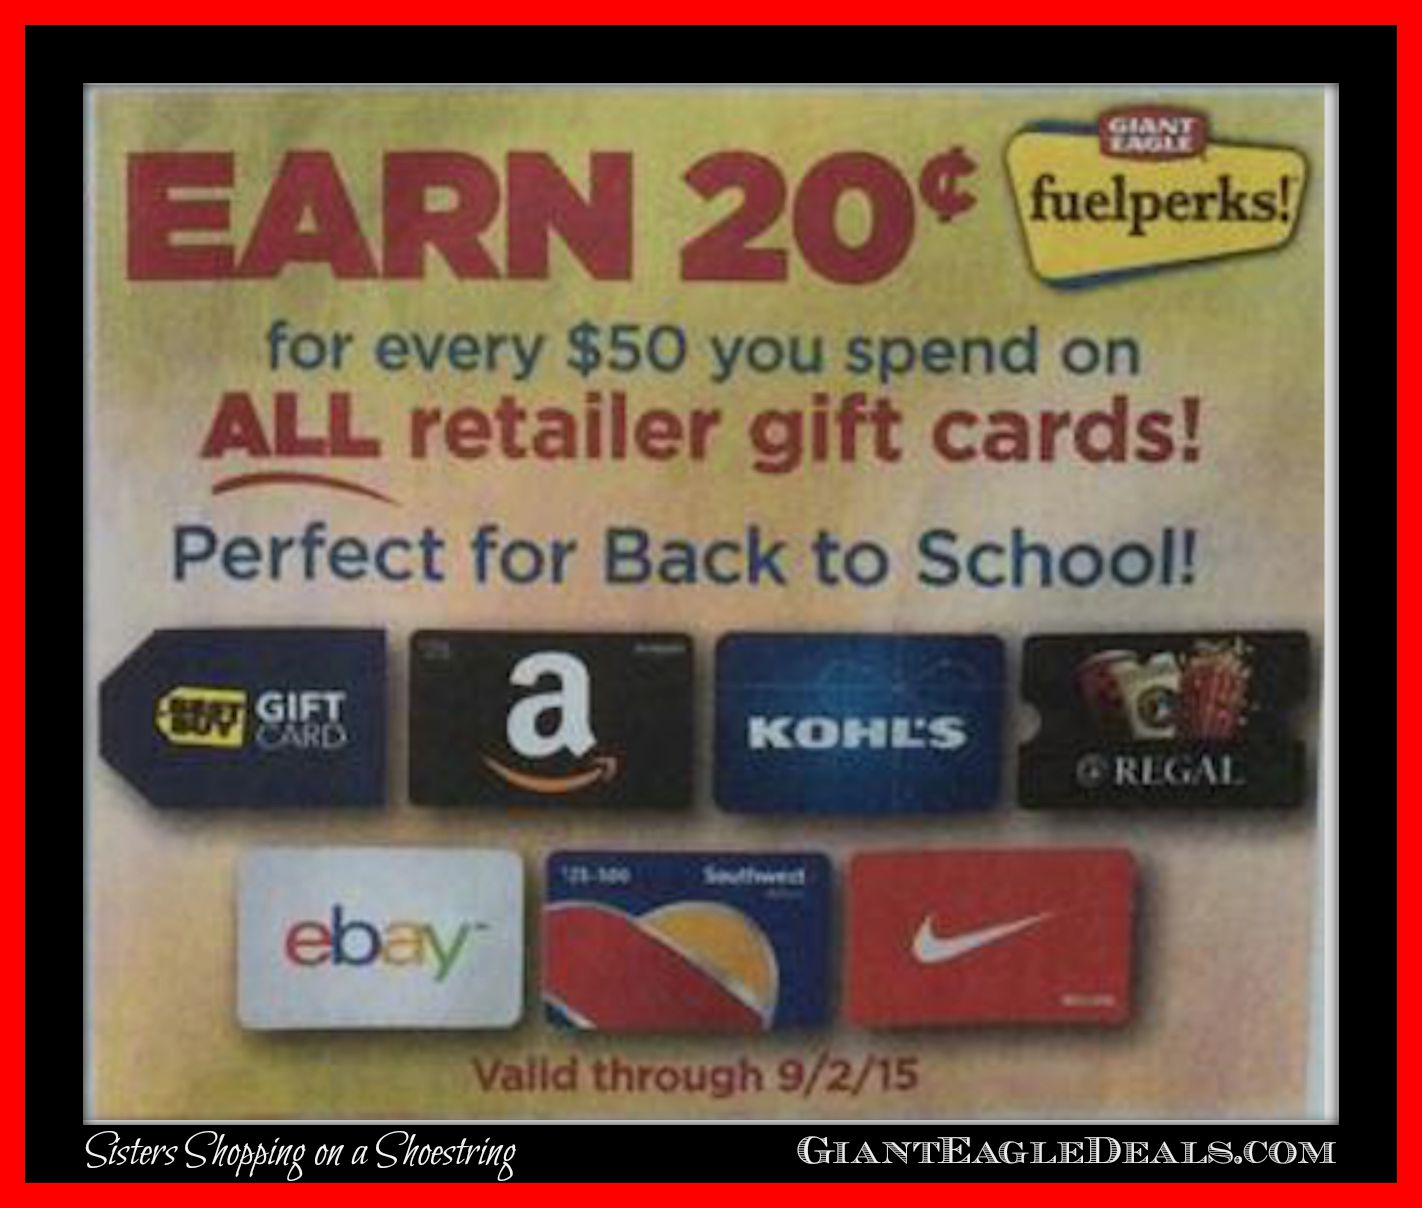 Buy A $100 Giant Eagle Gift Card Today, Receive A $10